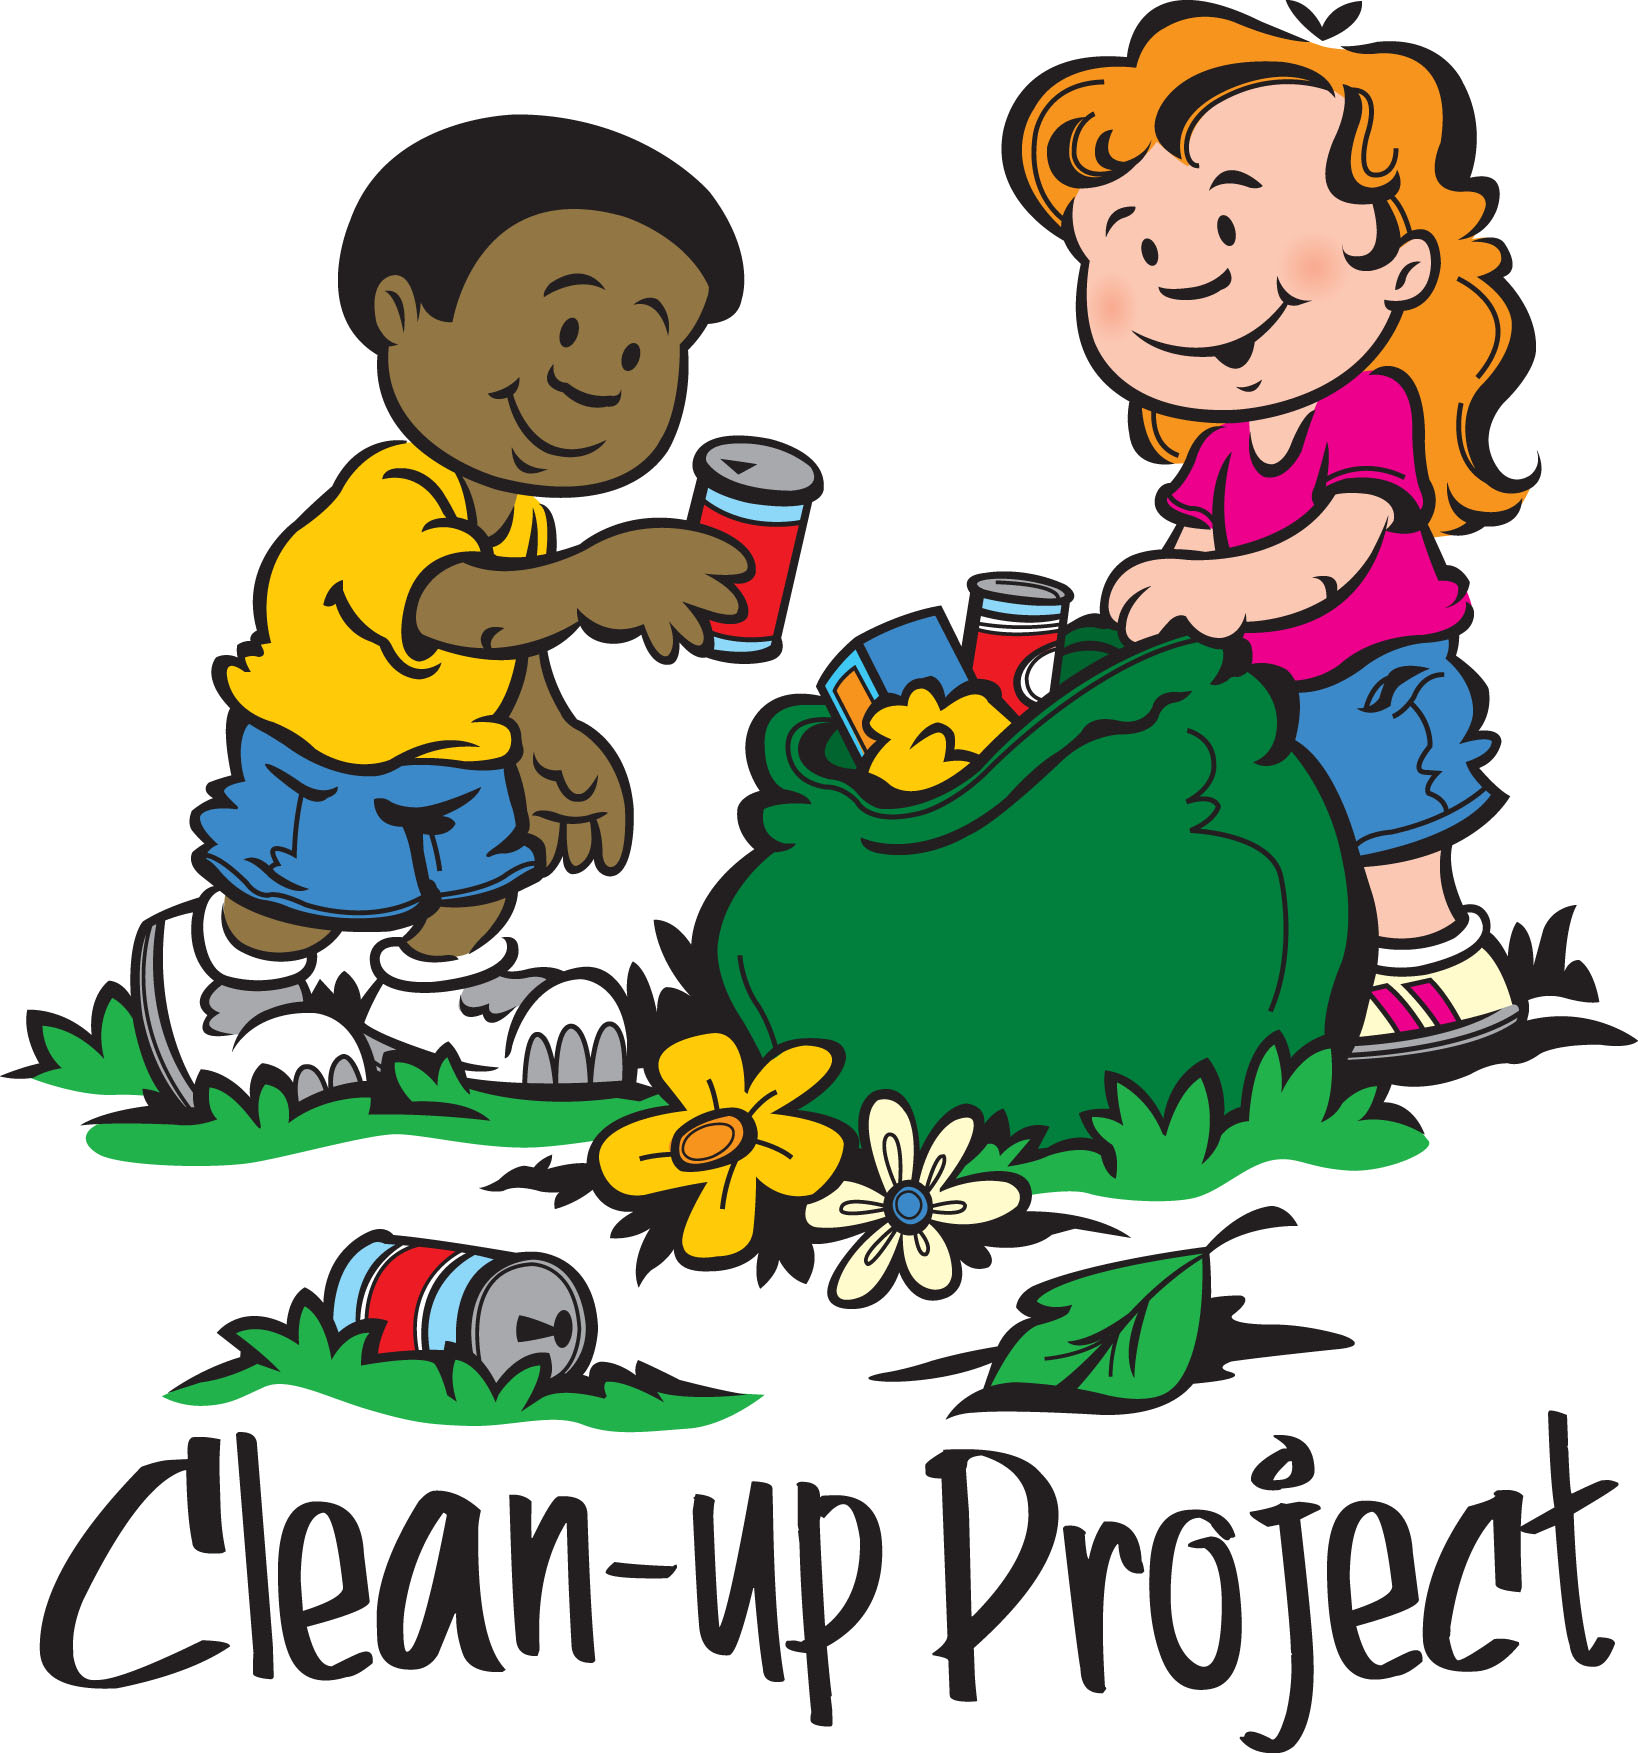 Spring Cleanup Clean Up Toys Clipart Free Download Best Clean Up Toys